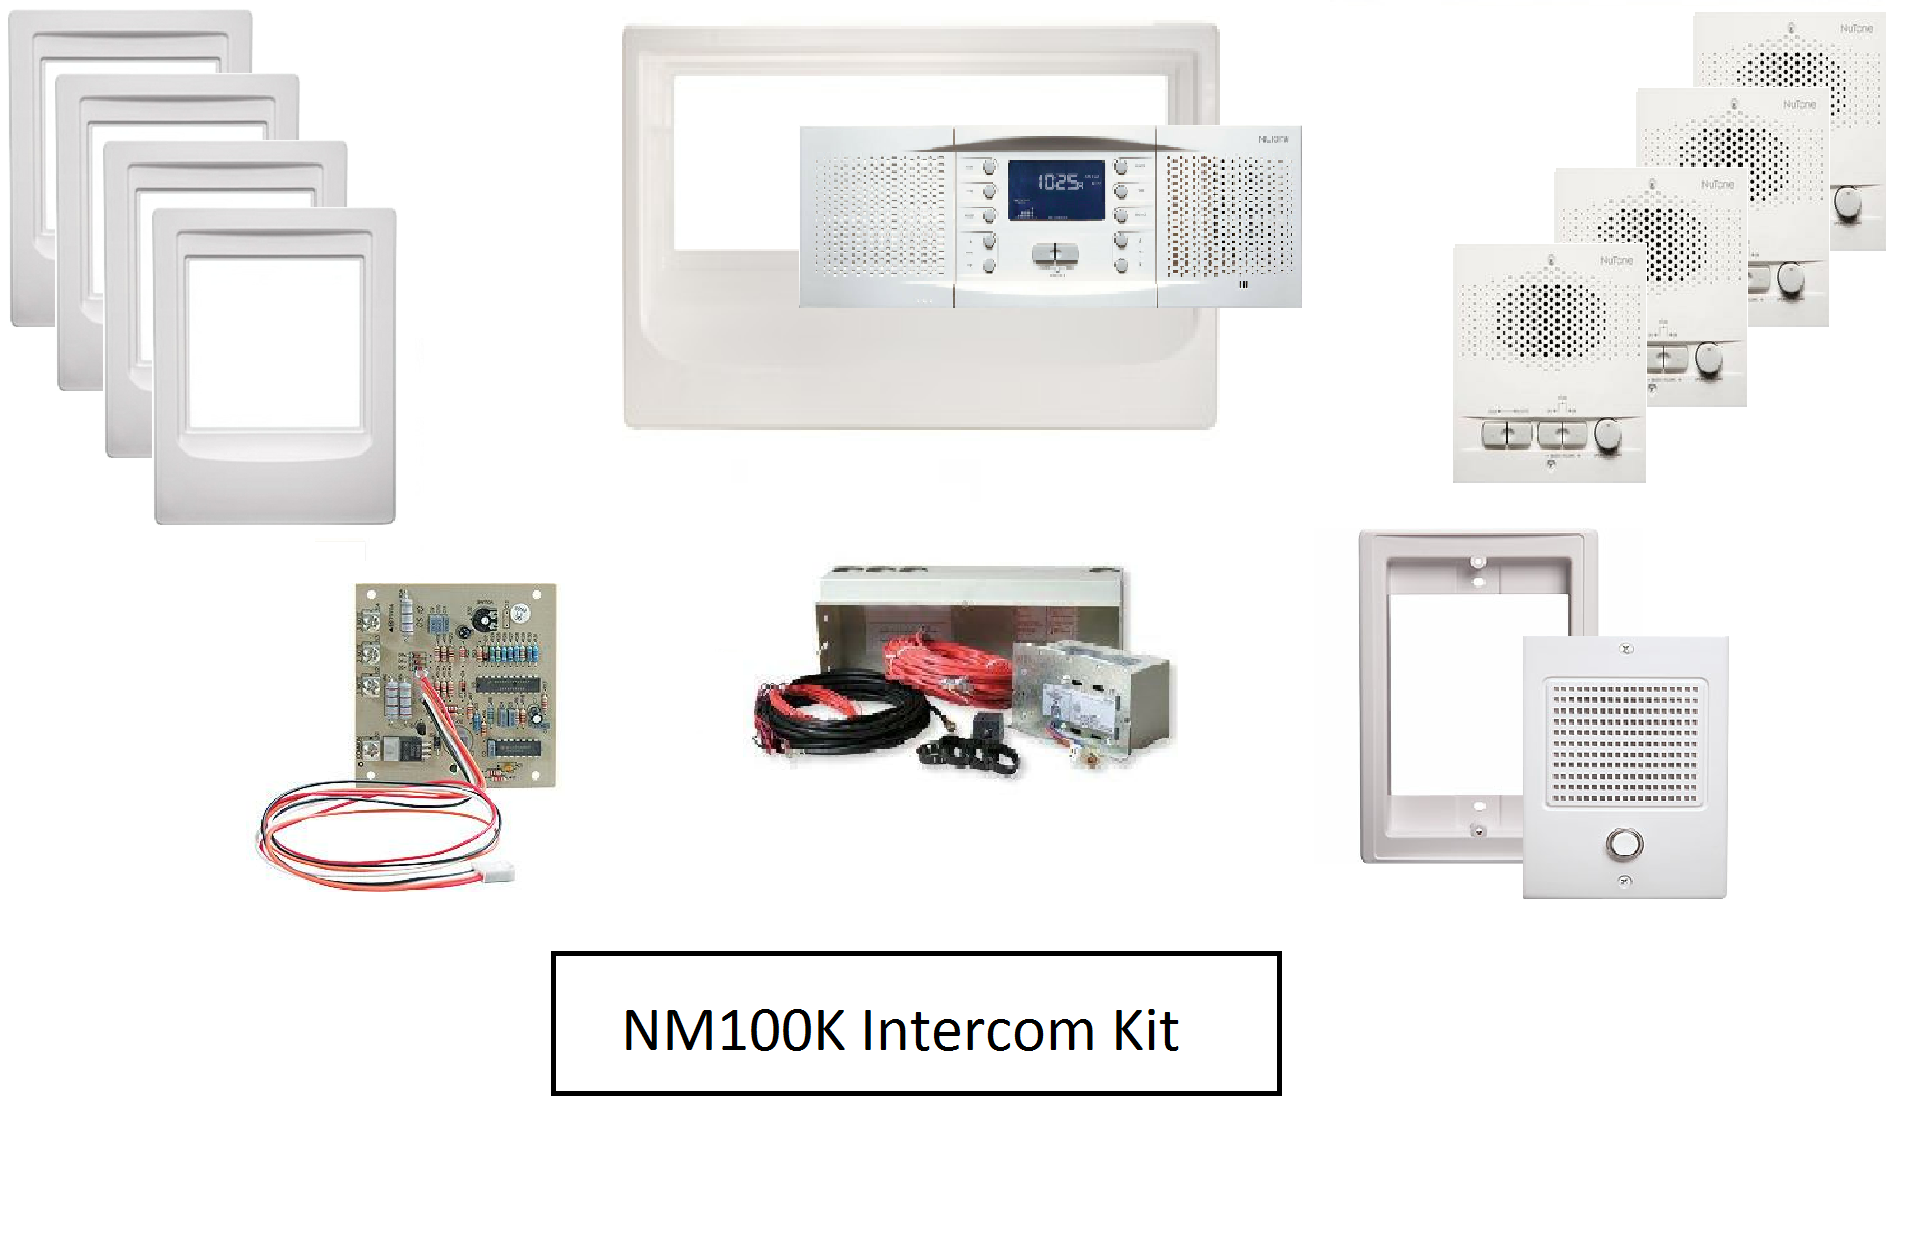 Manualguide Home Intercom Systems Wiring Drawings Nutone Diagram Nm100 Schematics Rh Leonardofaccoeditore Com